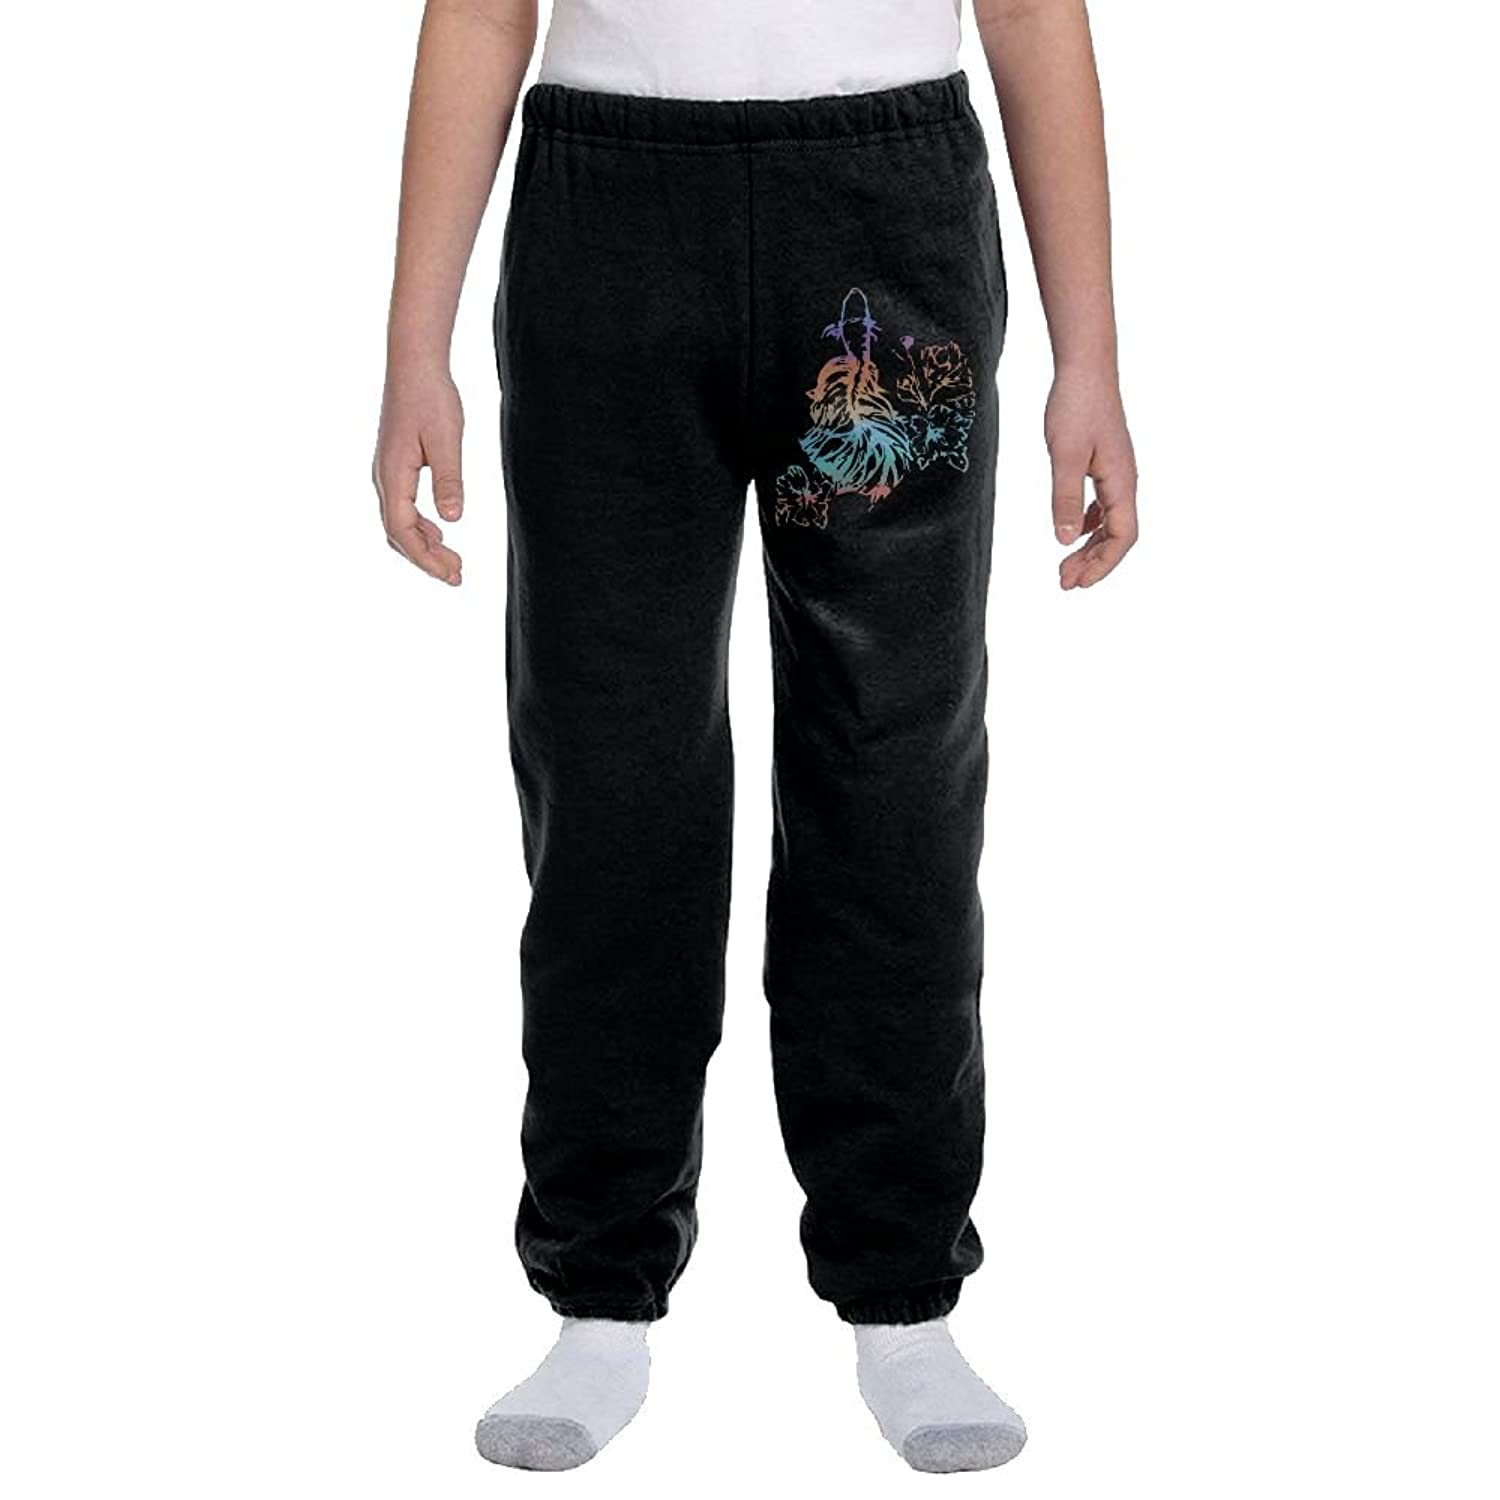 Sloth Playing Guitar Teenagers Cotton Sweatpants Casual Joggers Pants Active Pants